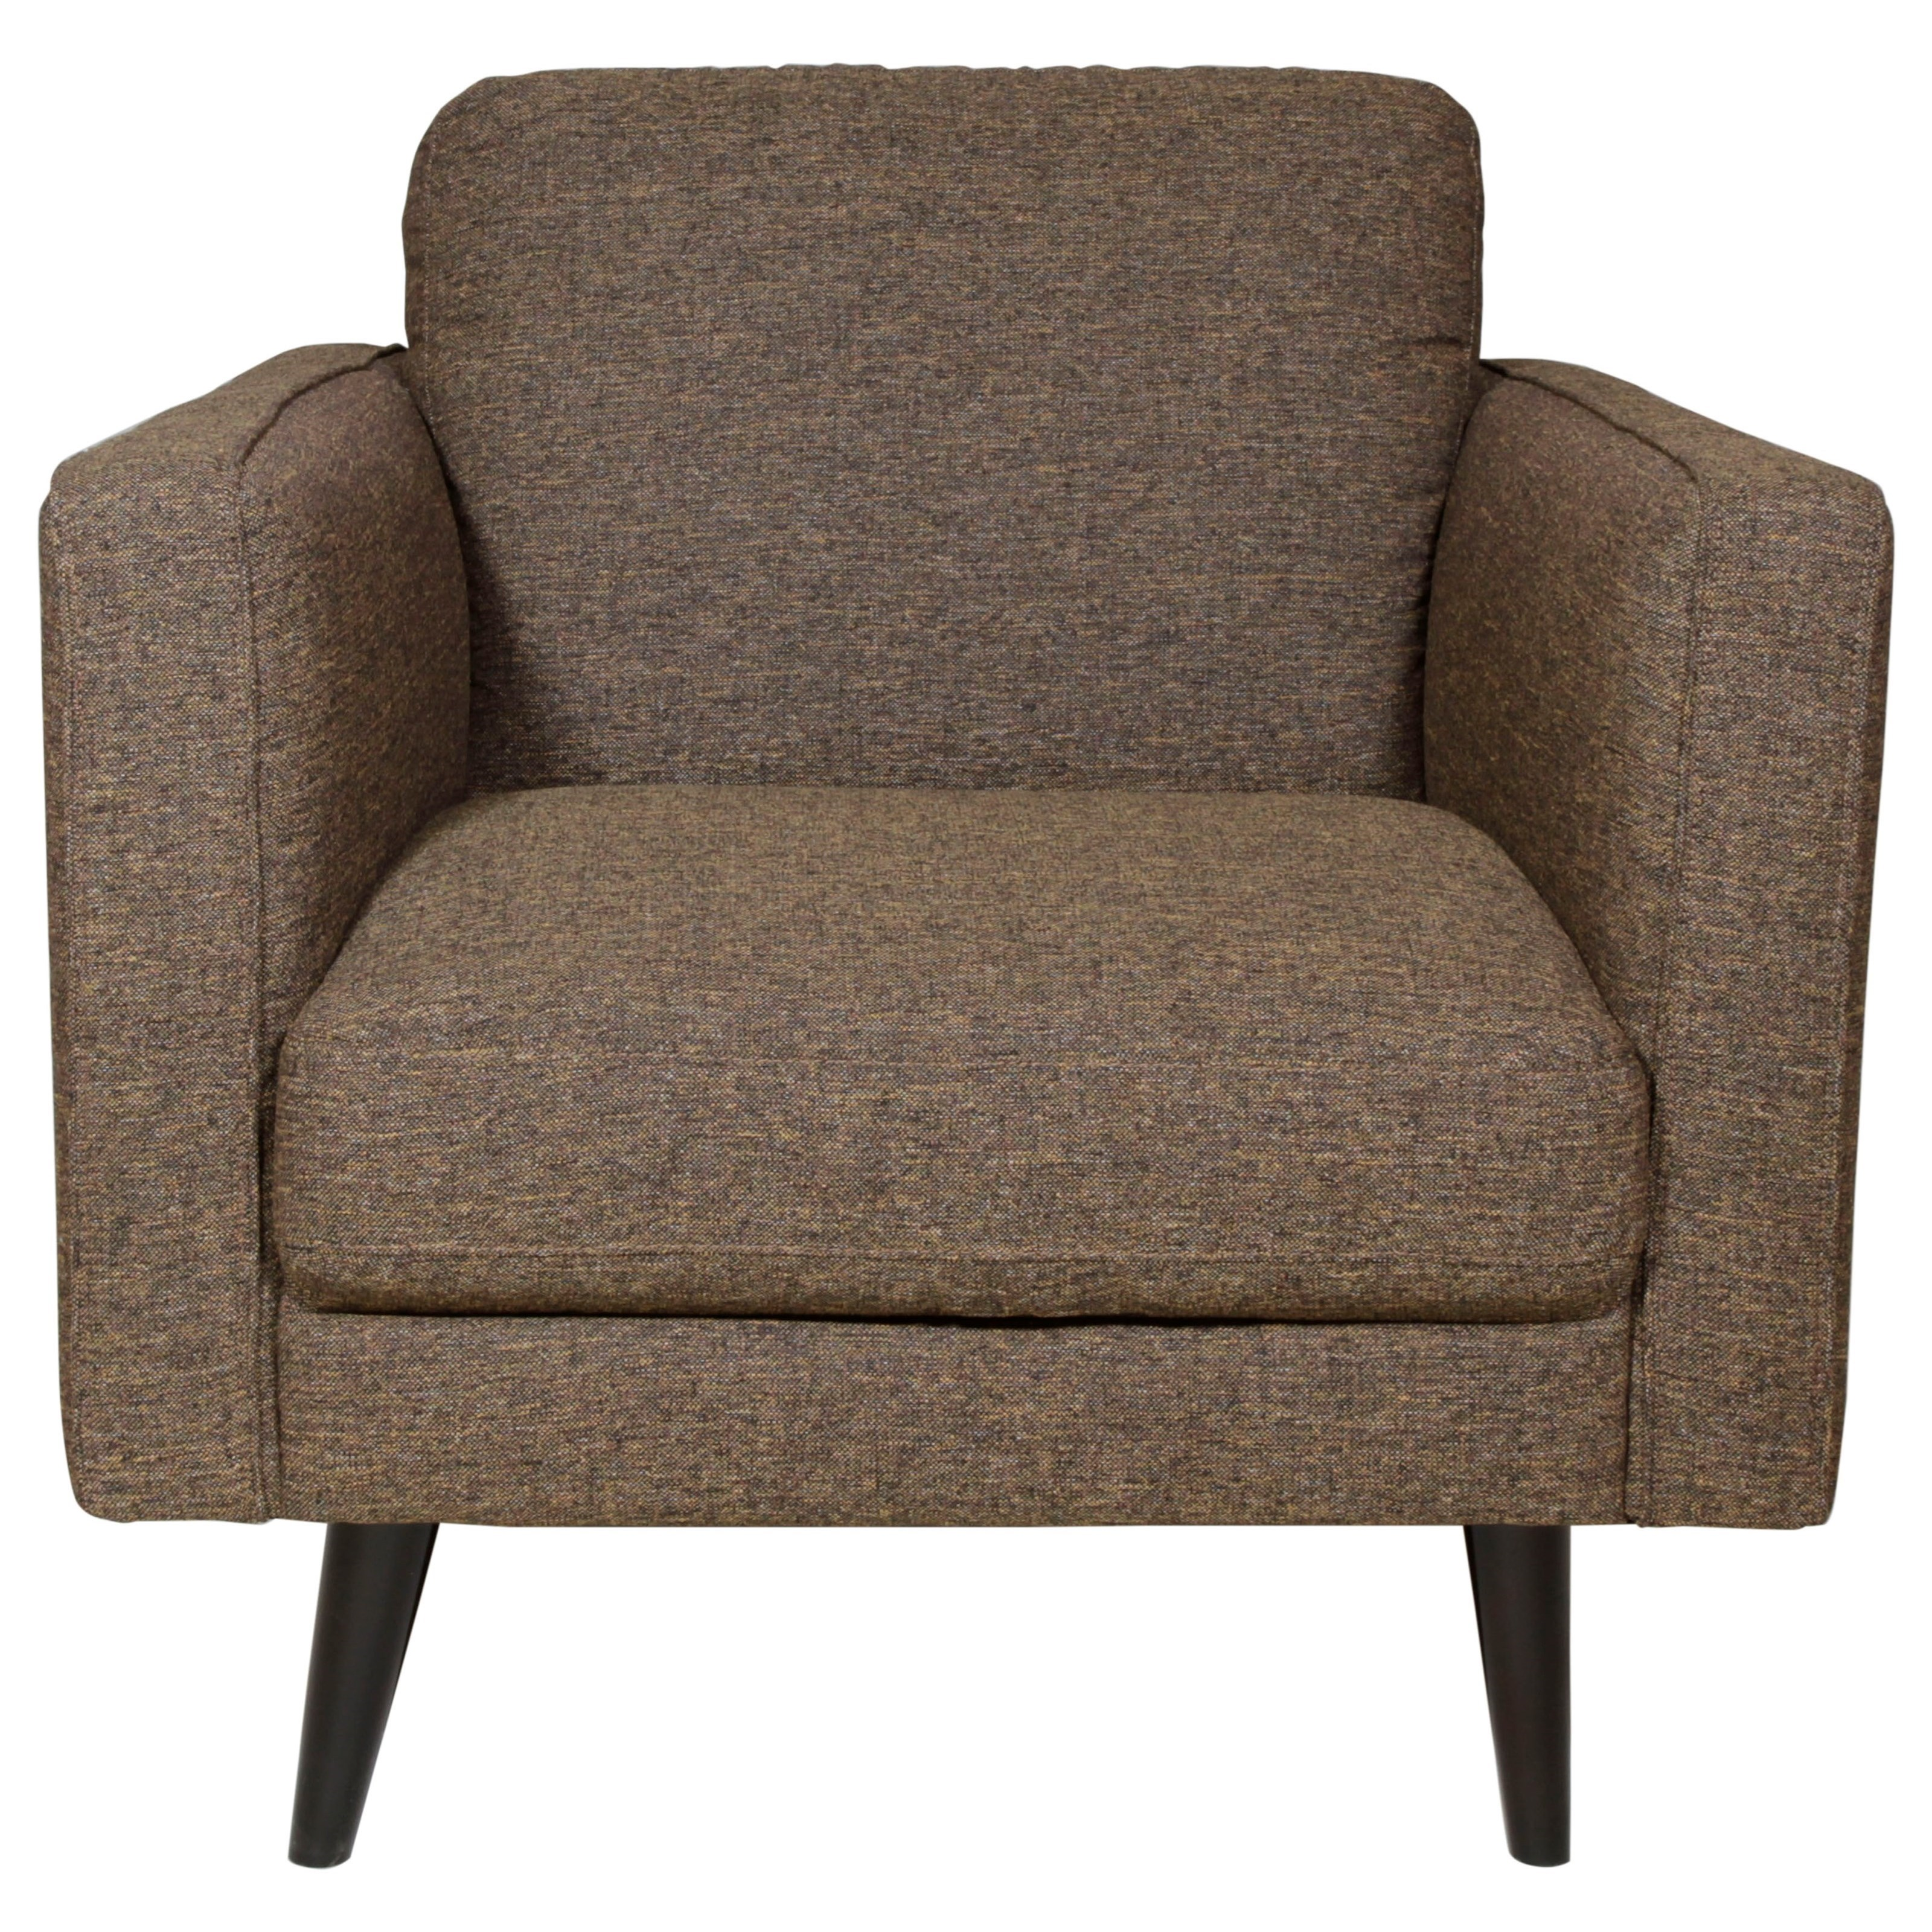 Destrezza Chair by Natuzzi Editions at Red Knot